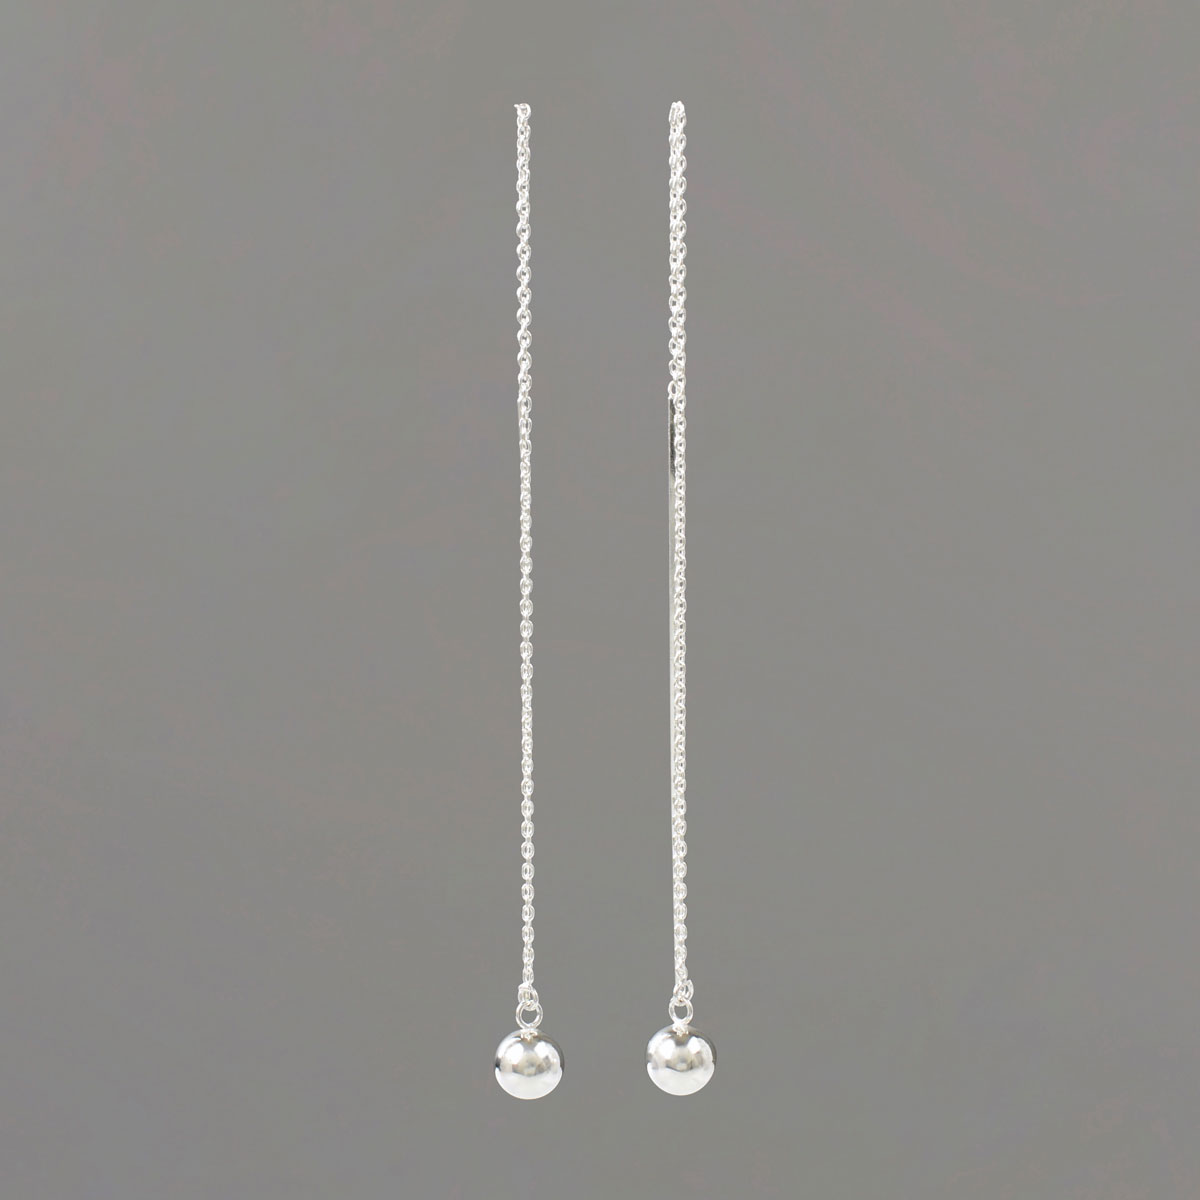 Long Threader Earrings in Sterling Silver